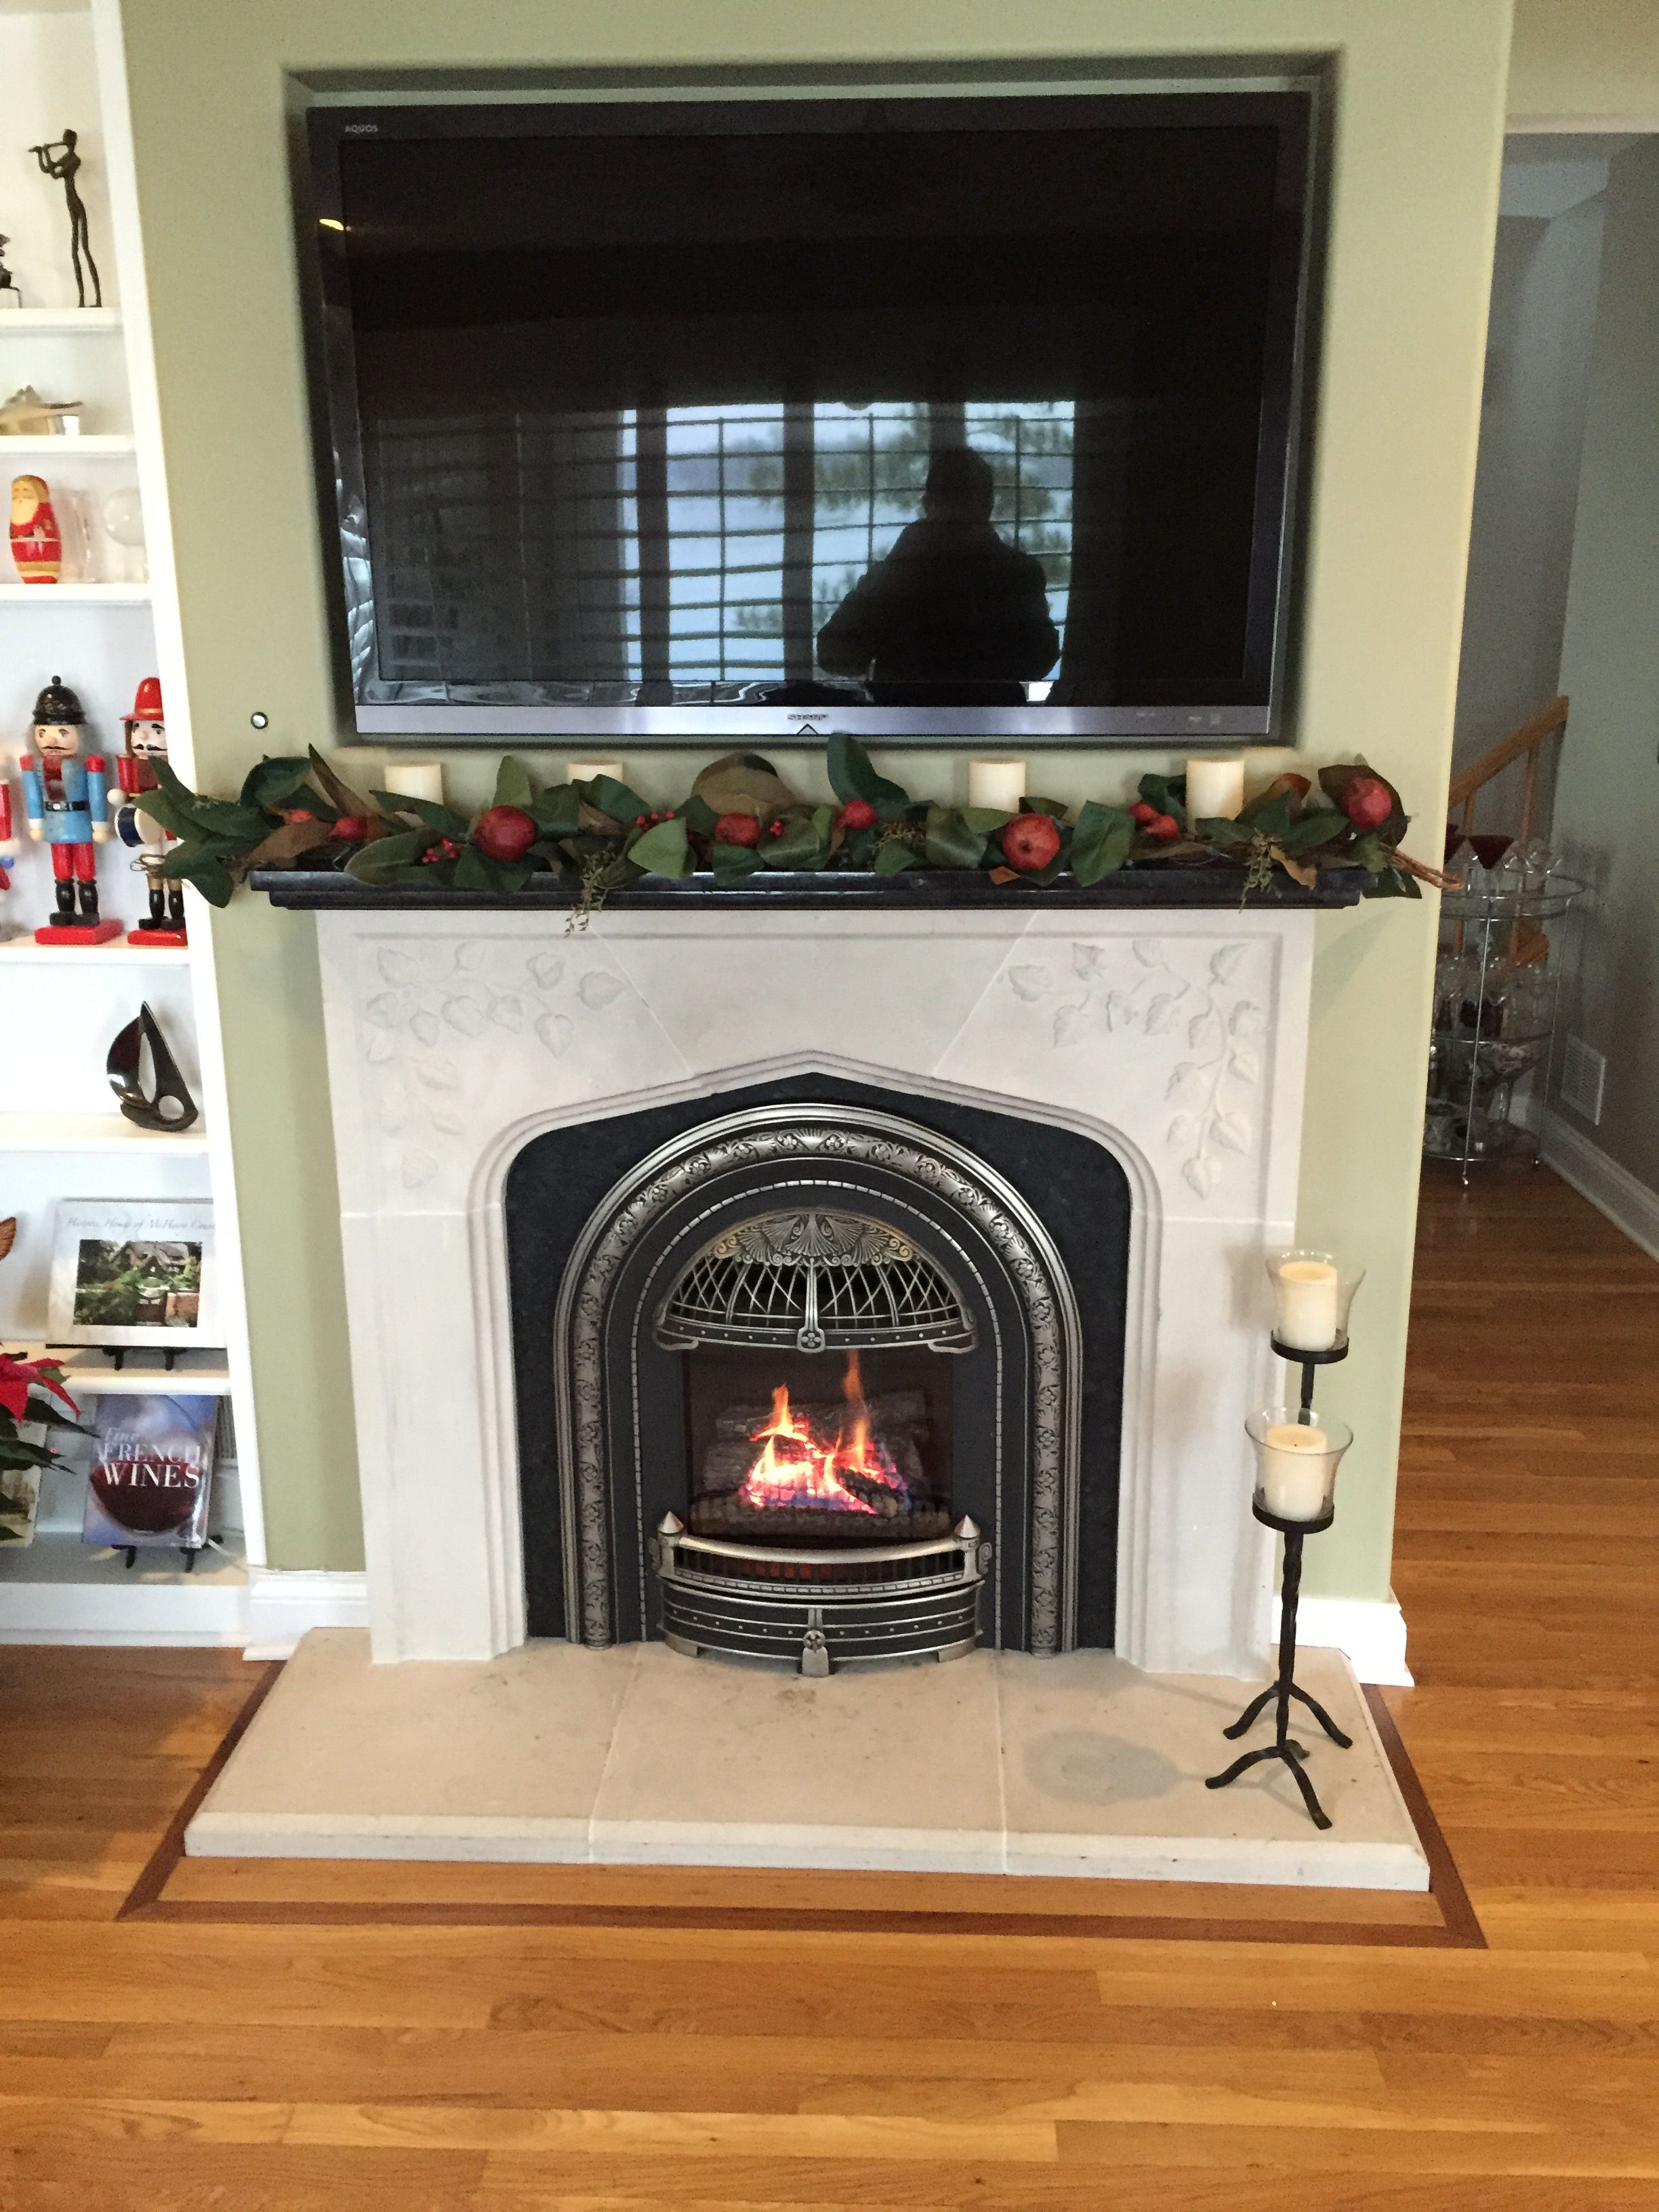 valor 530iln log fire radiant gas direct vent fireplace or insert